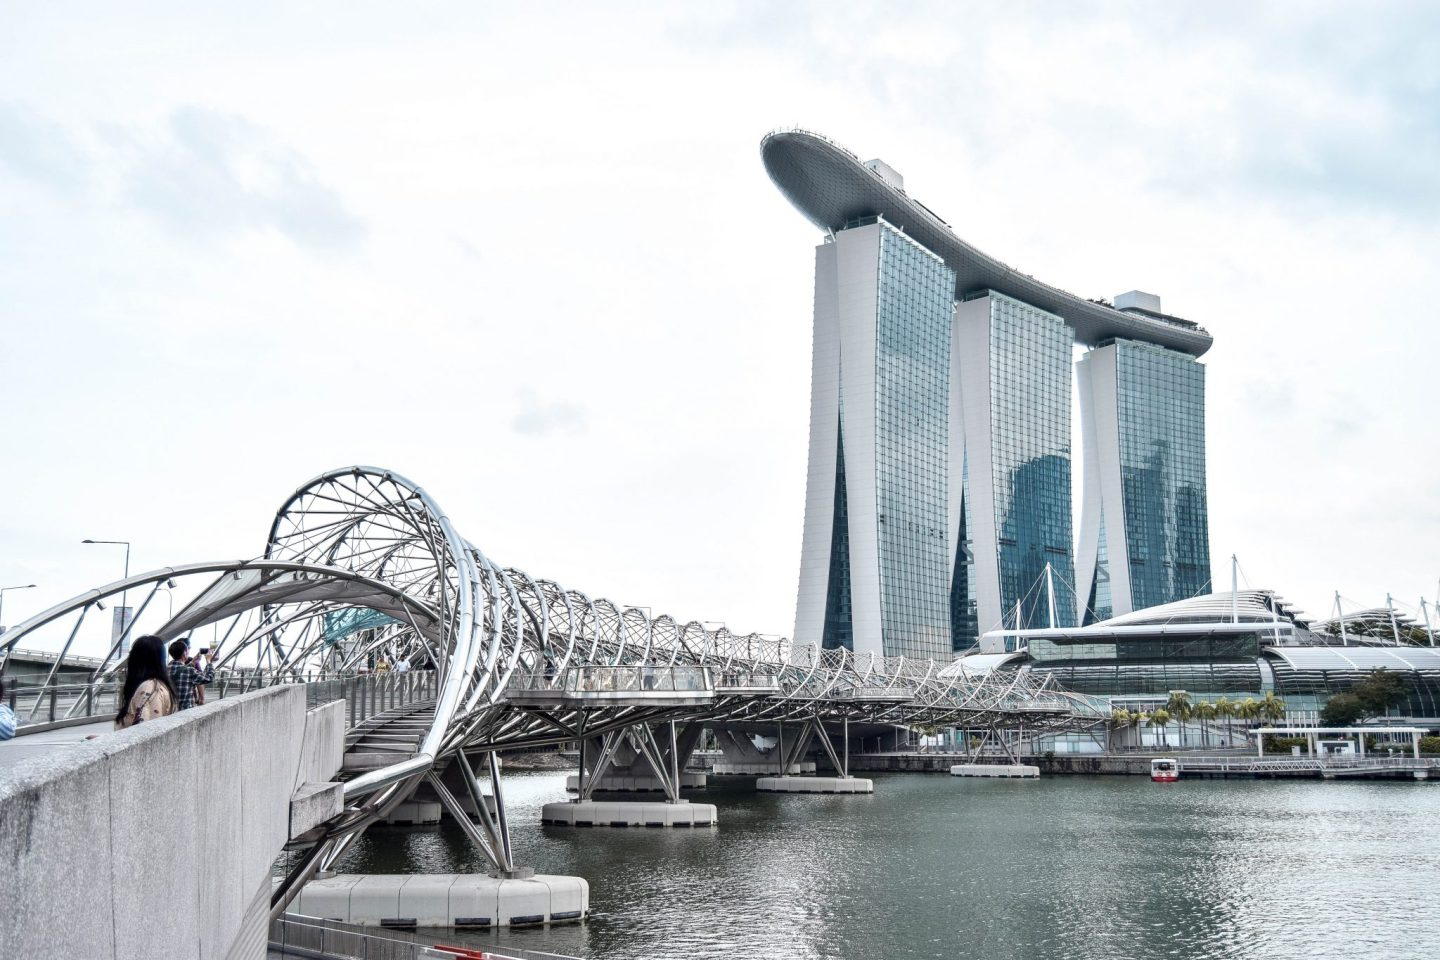 Wanderers & Warriors - Helix Bridge Marina Bay - Best Things To Do In Singapore